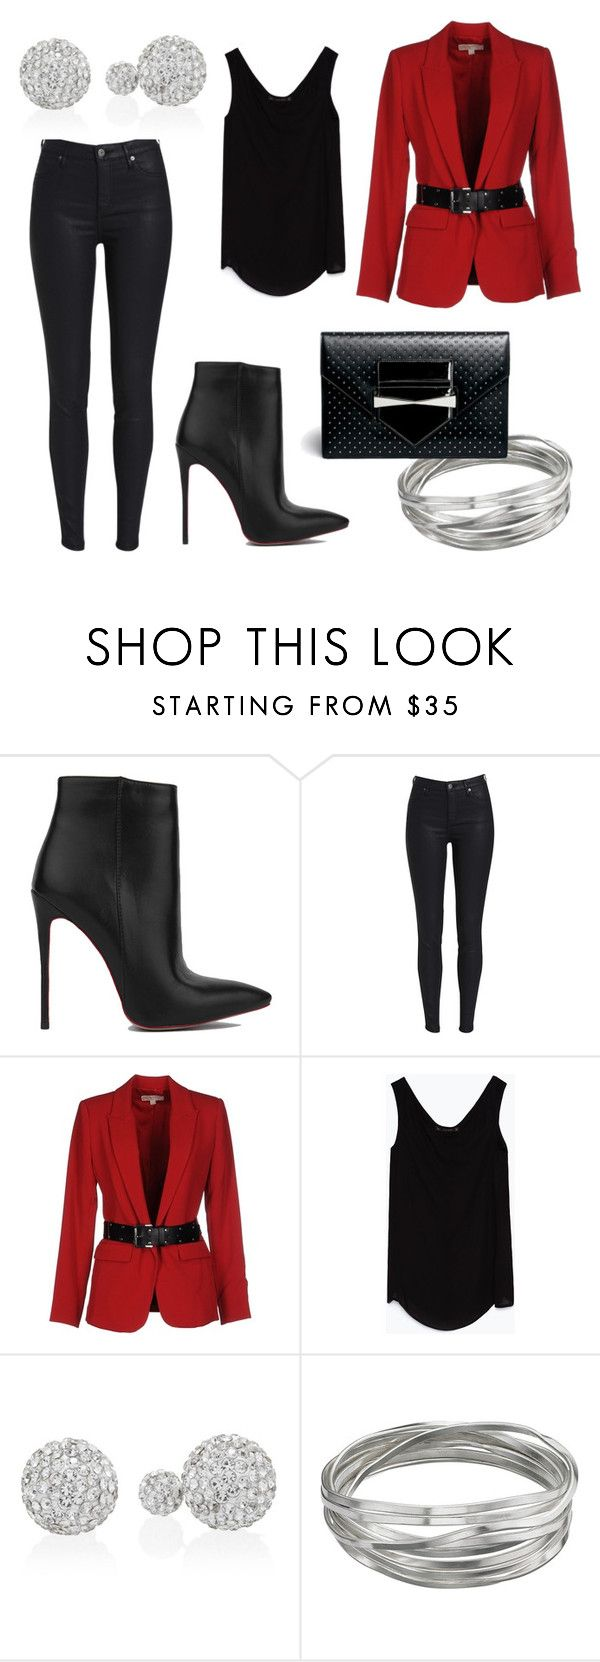 """""""So chic"""" by agustina-oliveras ❤ liked on Polyvore featuring Akira Black Label, MICHAEL Michael Kors, Zara, White House Black Market, Whistles and Alexander McQueen"""